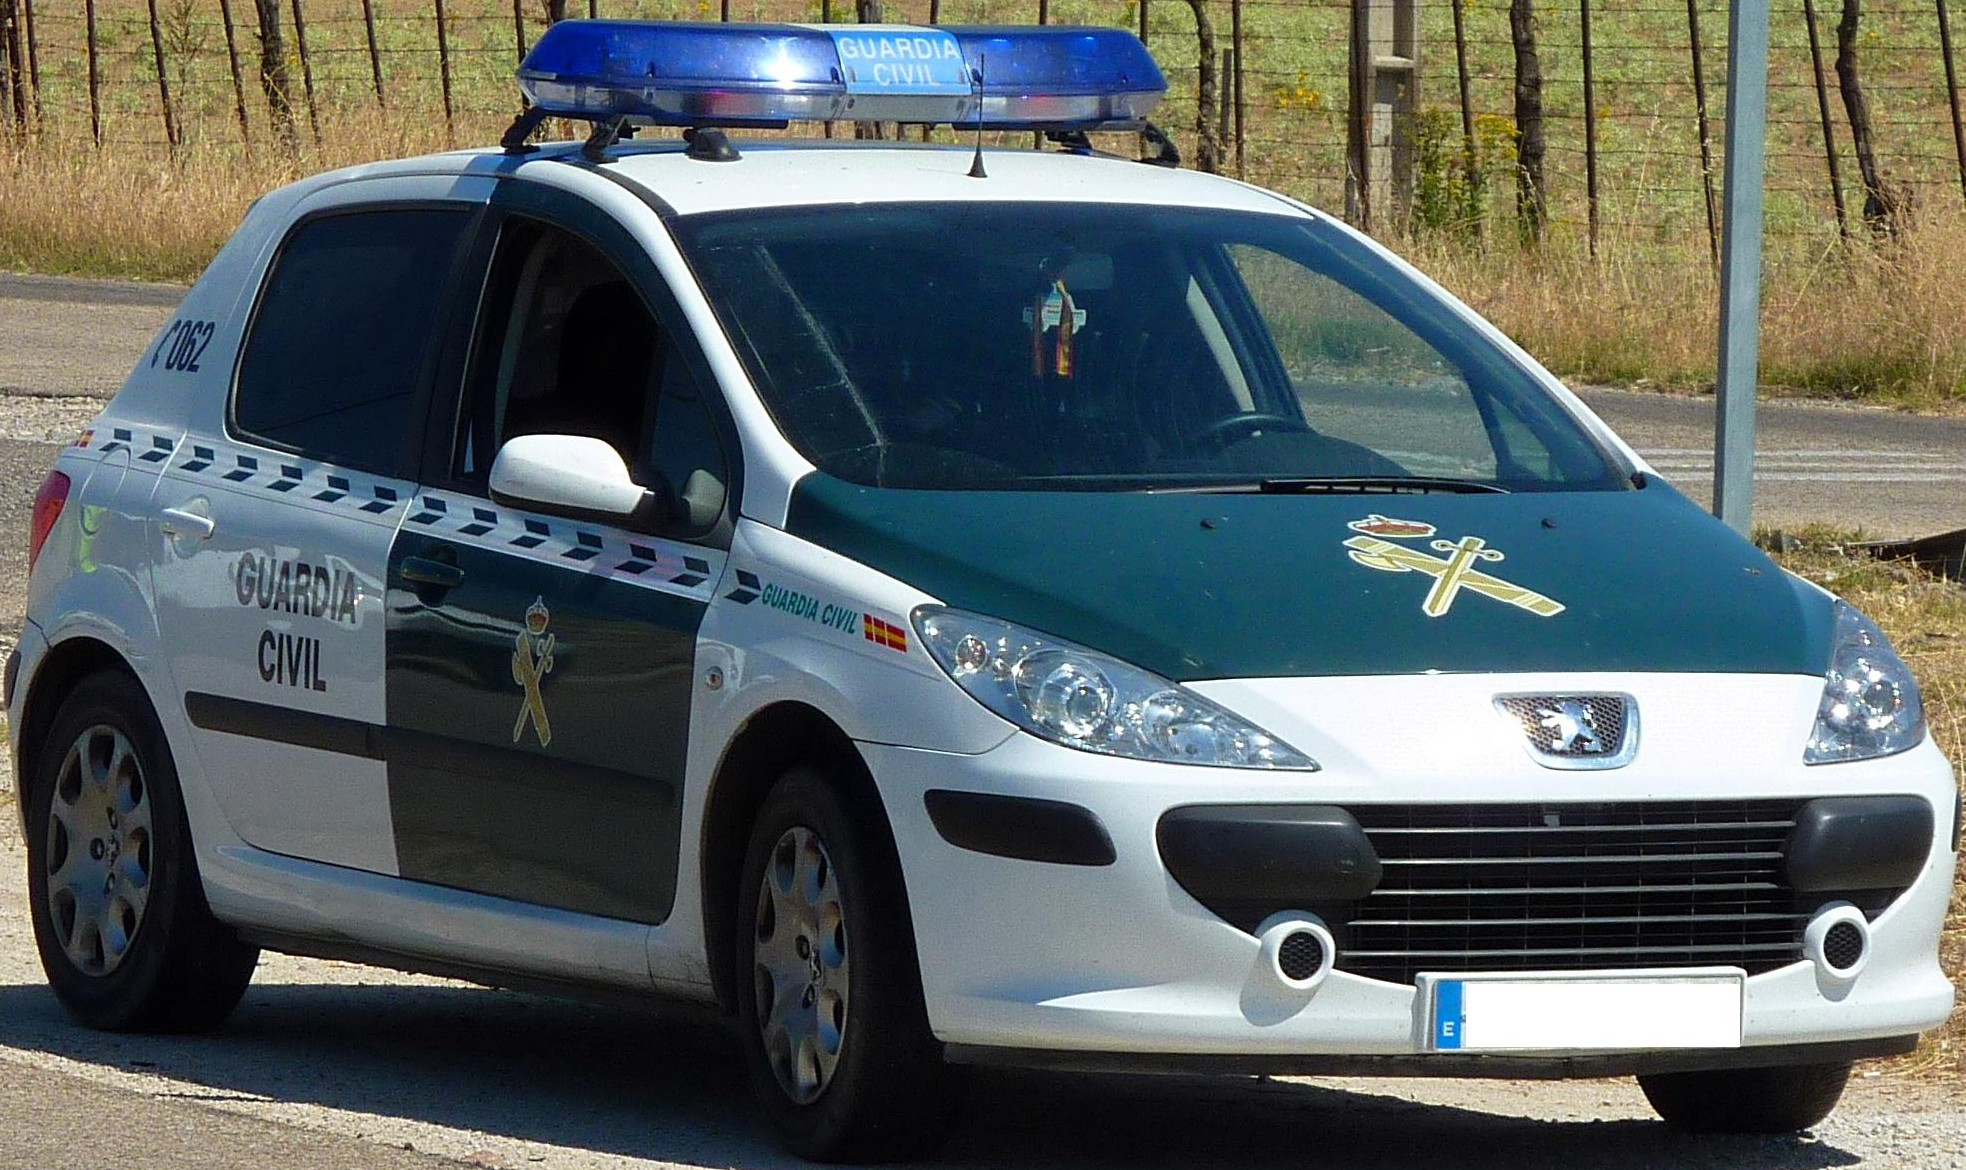 Guardia-Civil-tarragona-club-cannabi-116-11-15